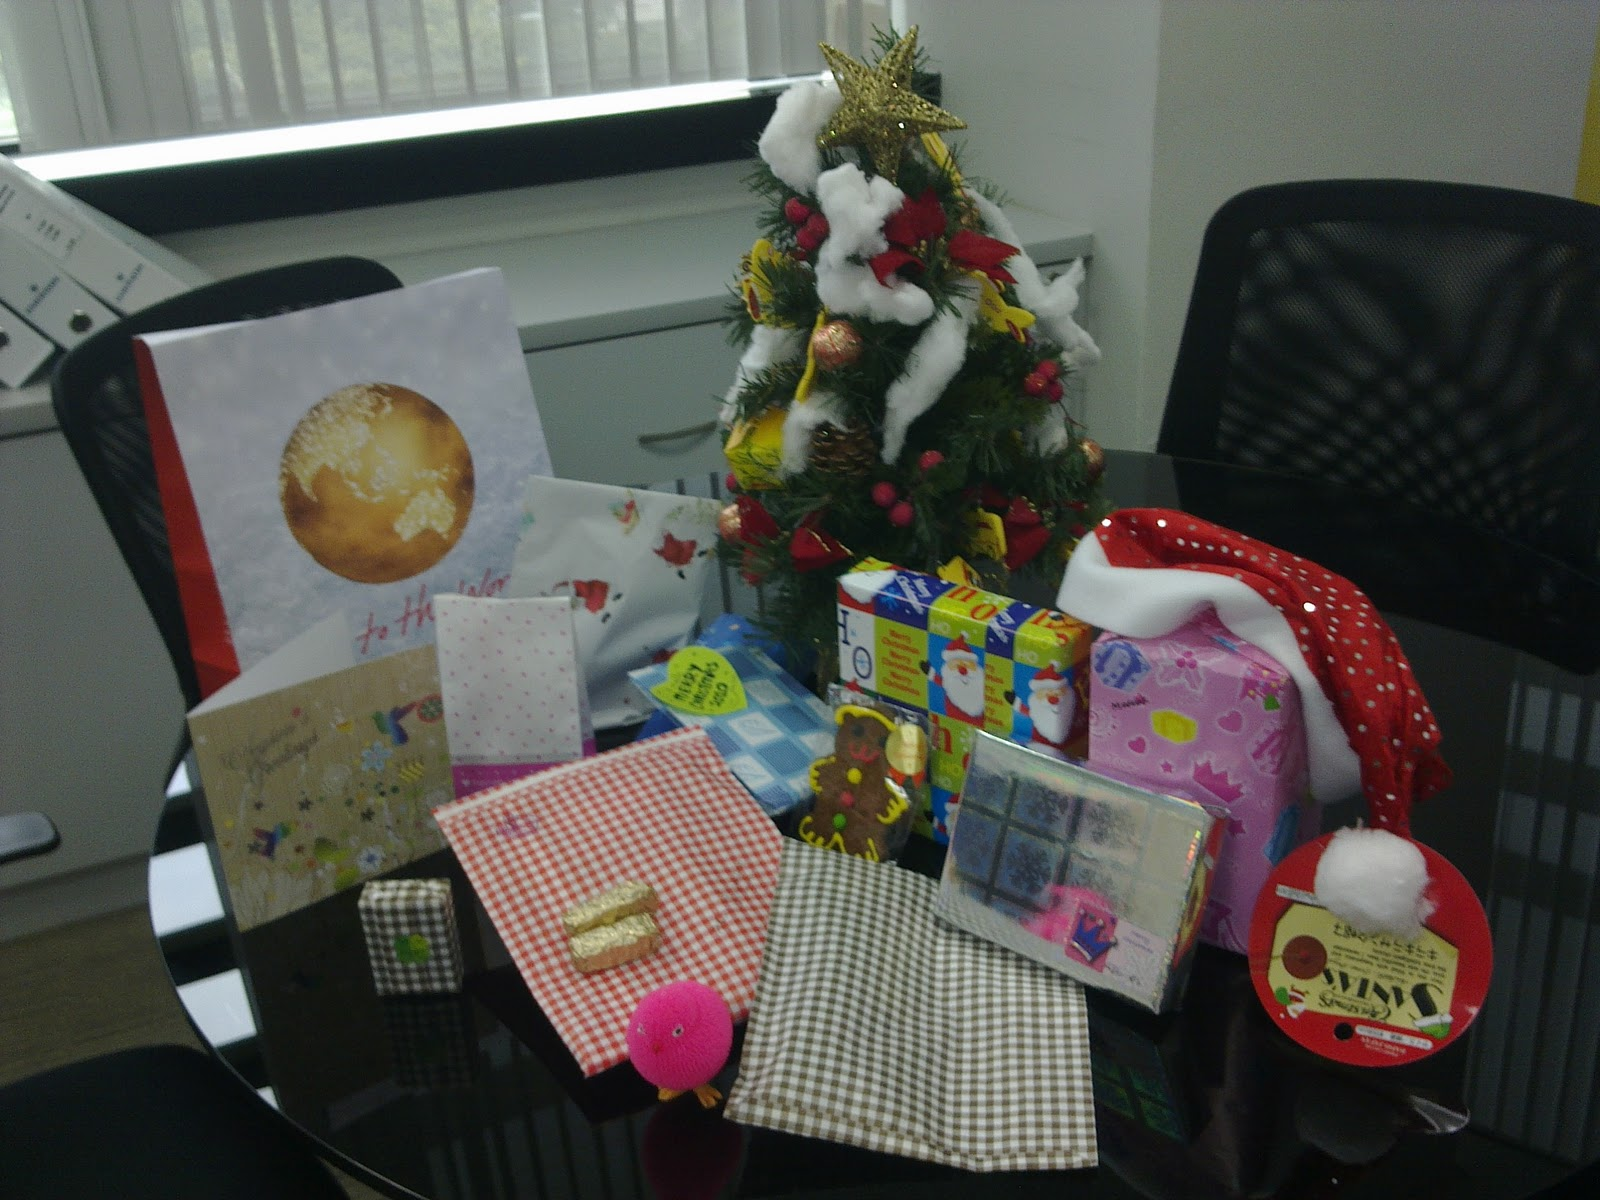 My Story-Baby Love: 2010 Christmas Gifts from Office Colleagues